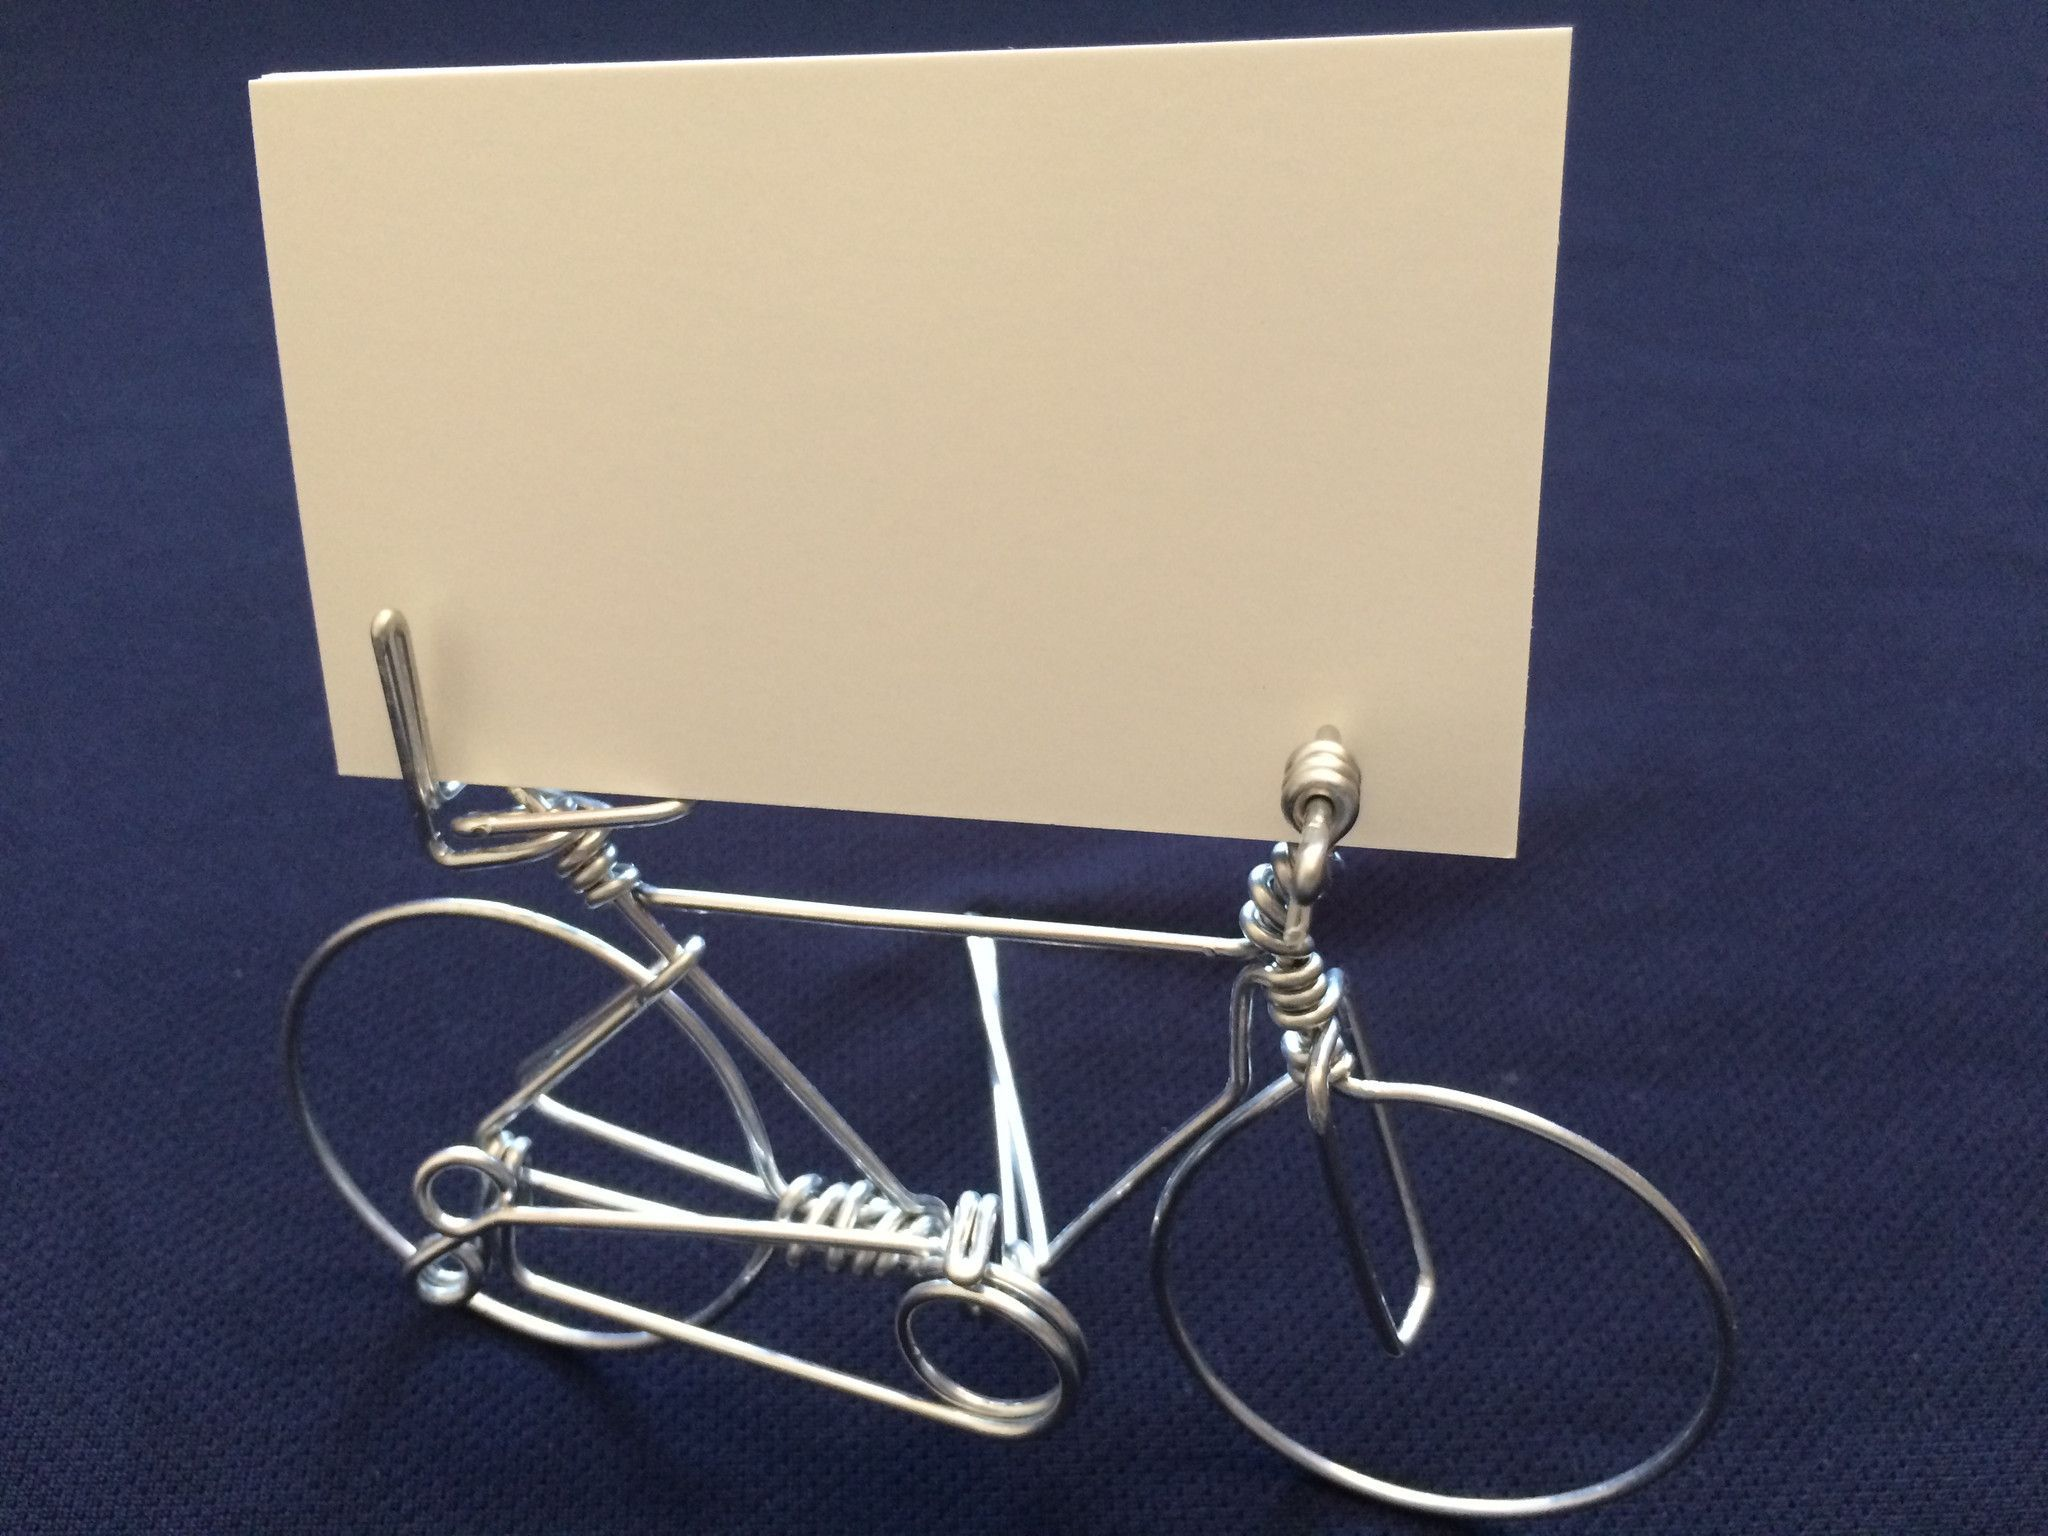 Creative Bicycle Business Card Holder on Desk | Business card ...